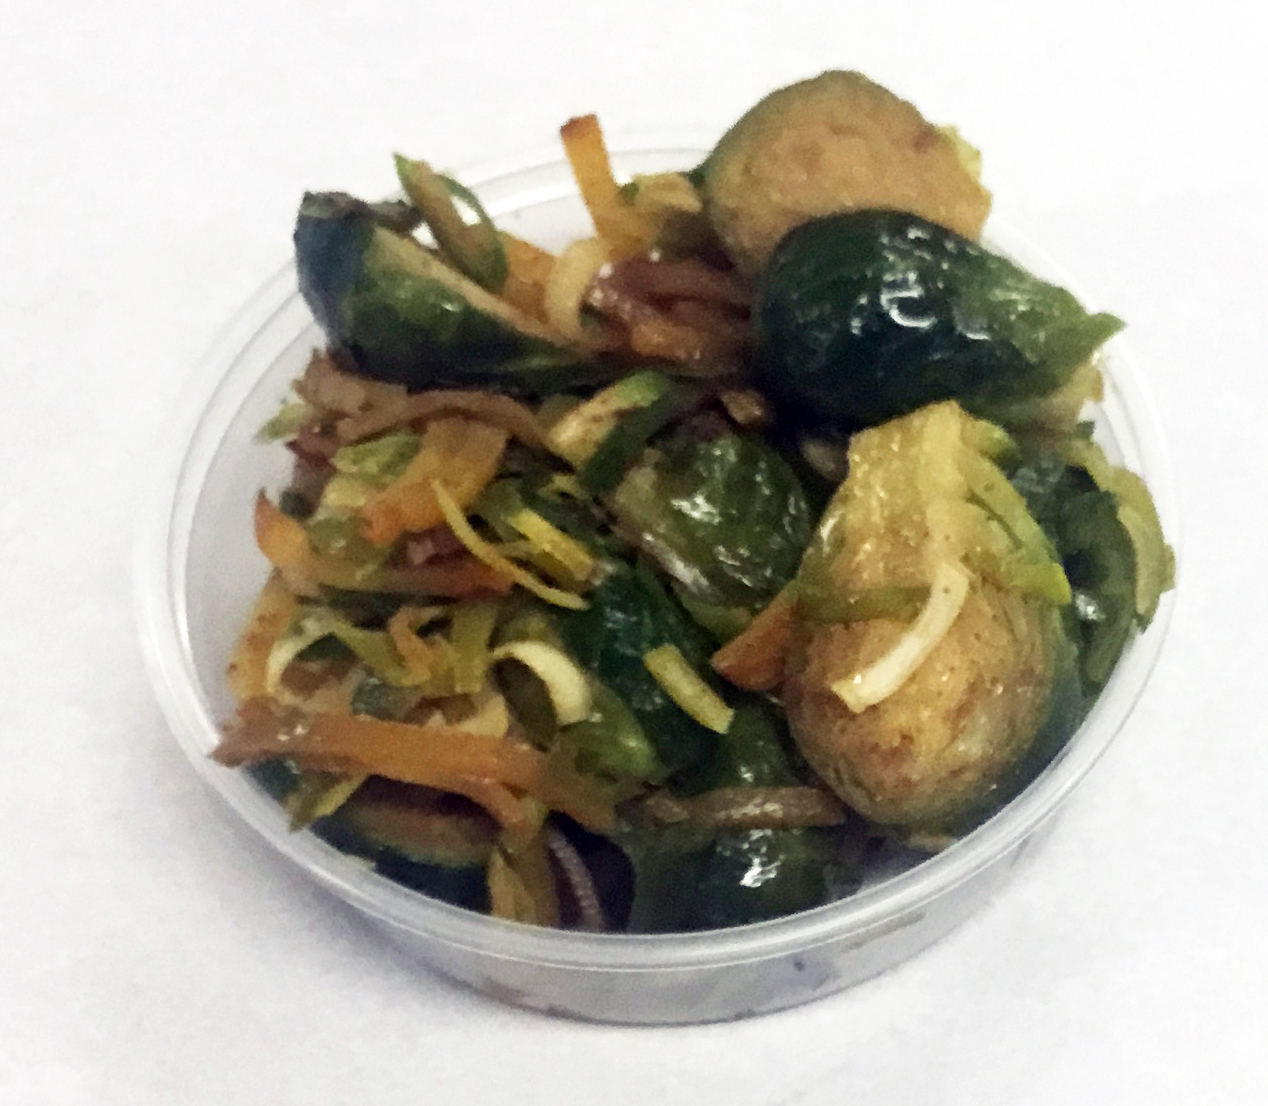 Brussel sprouts with golden beets, leeks and chili.